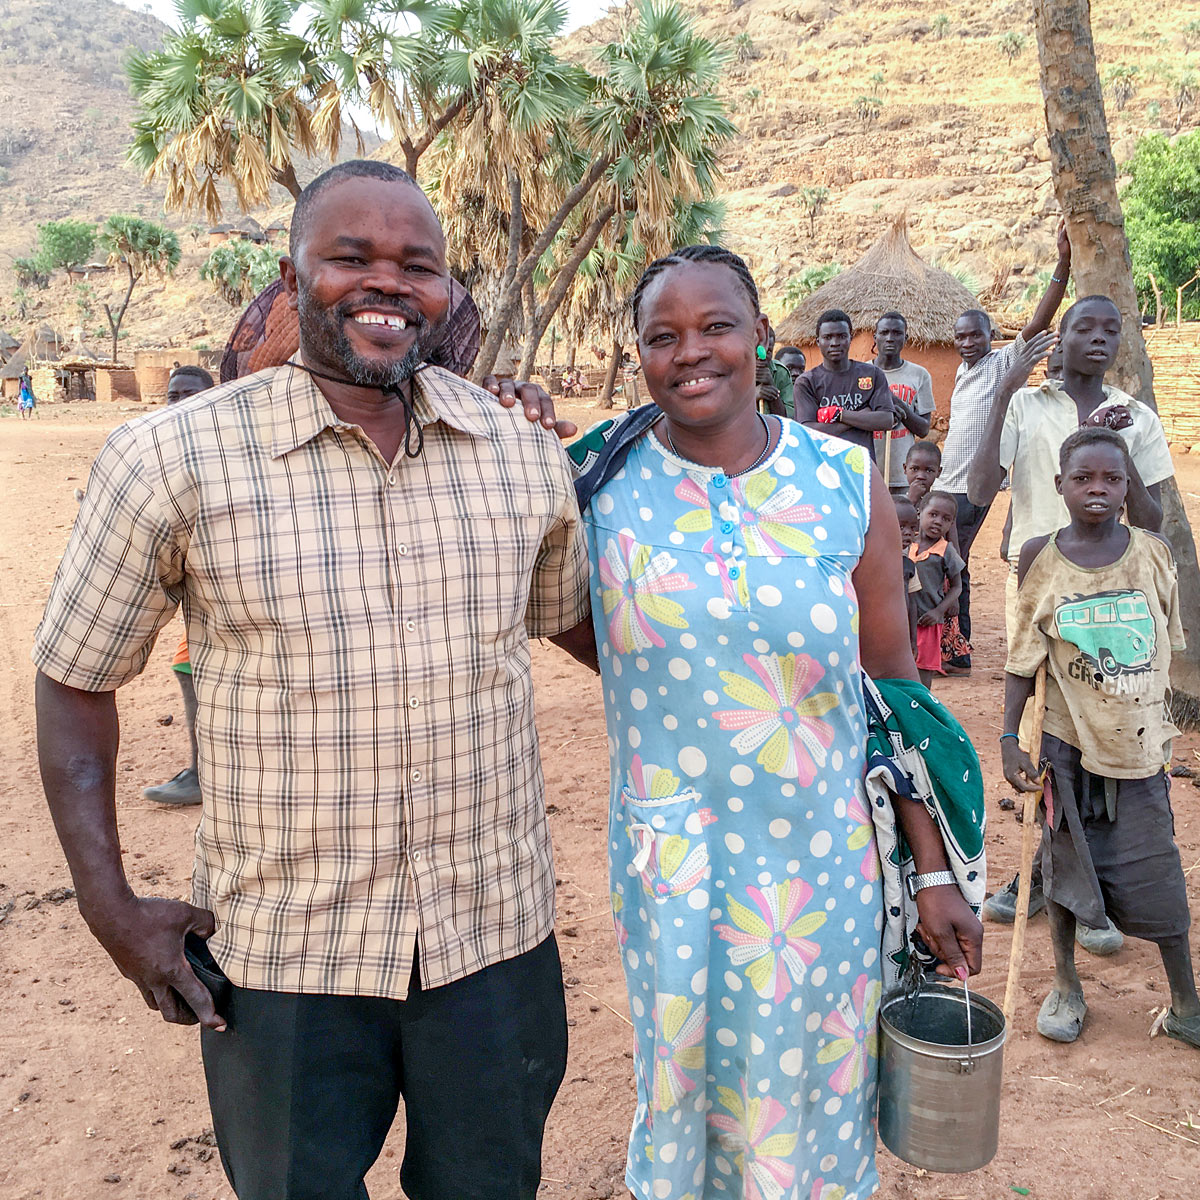 Morris and his wife in African village